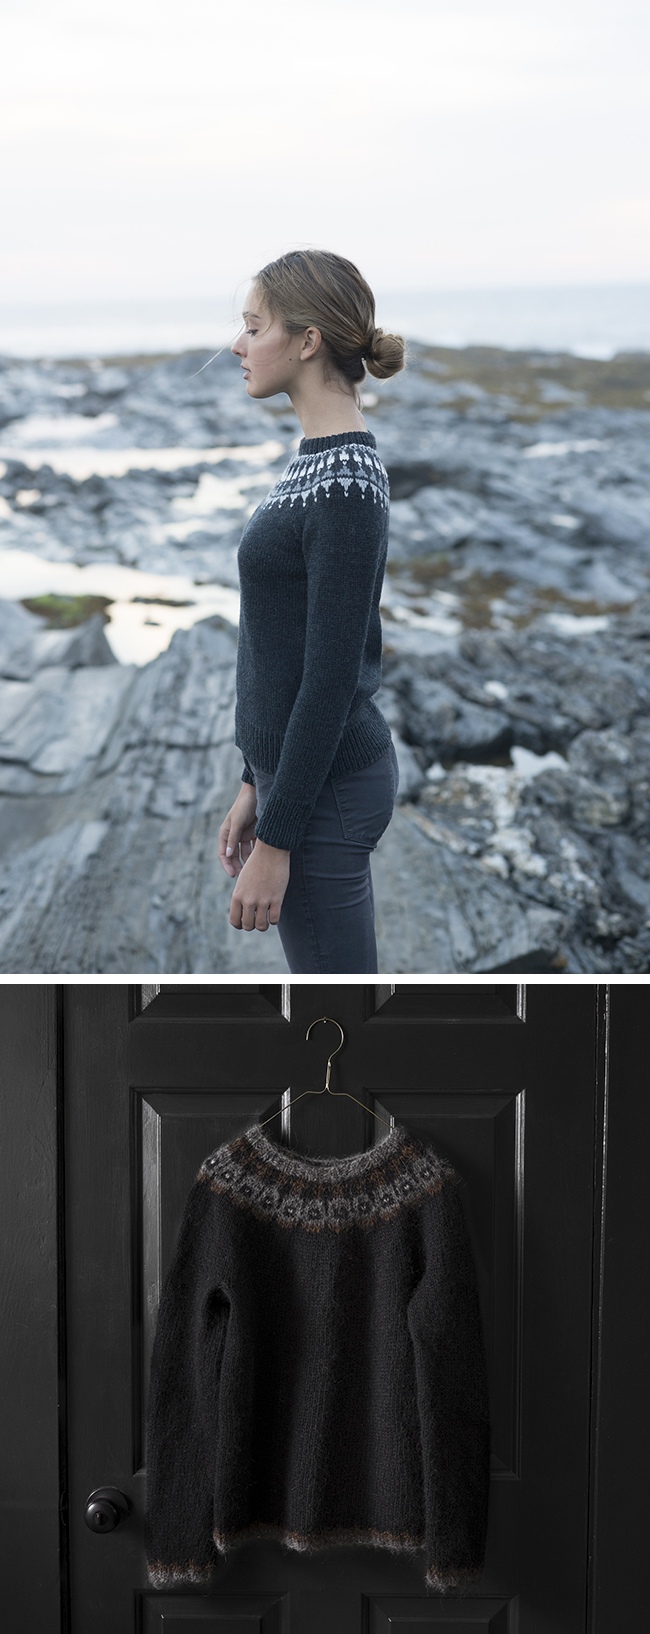 New Favorites: Dark yoke sweaters